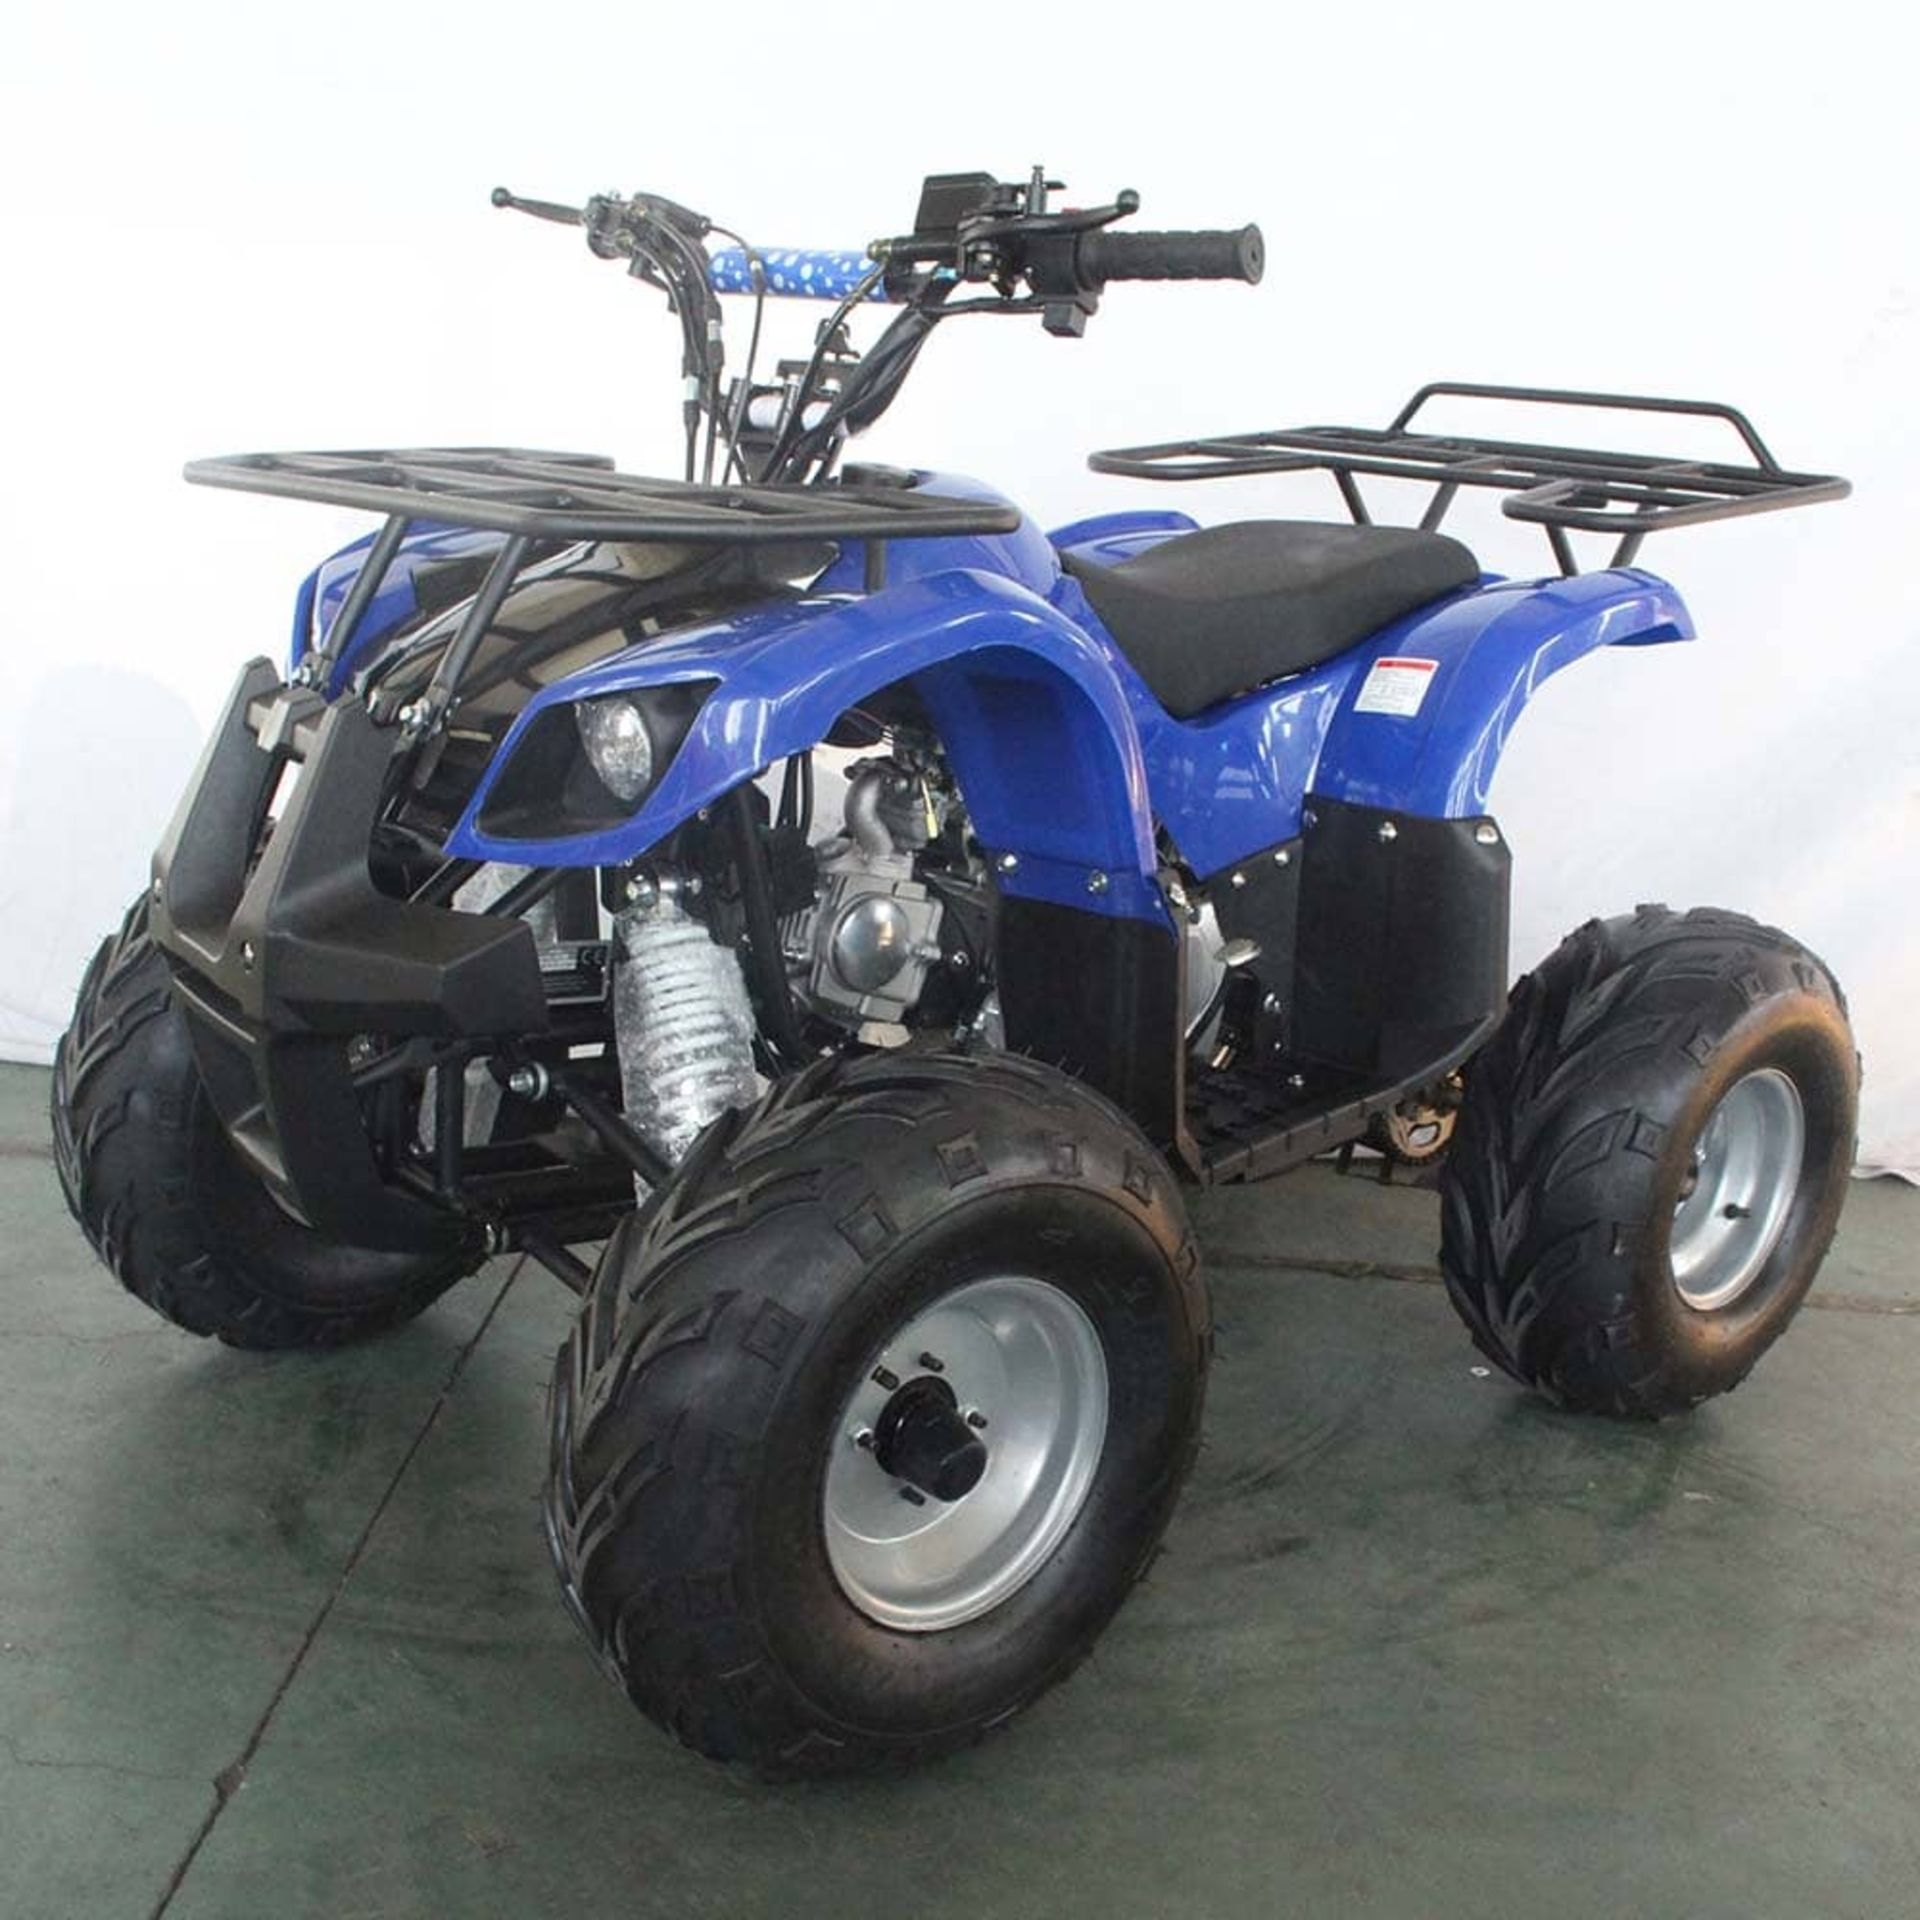 + VAT Brand New 125cc Condor Quad Bike - Four Stroke - Single Cylinder - Front Drum Brakes & Rear - Image 9 of 9